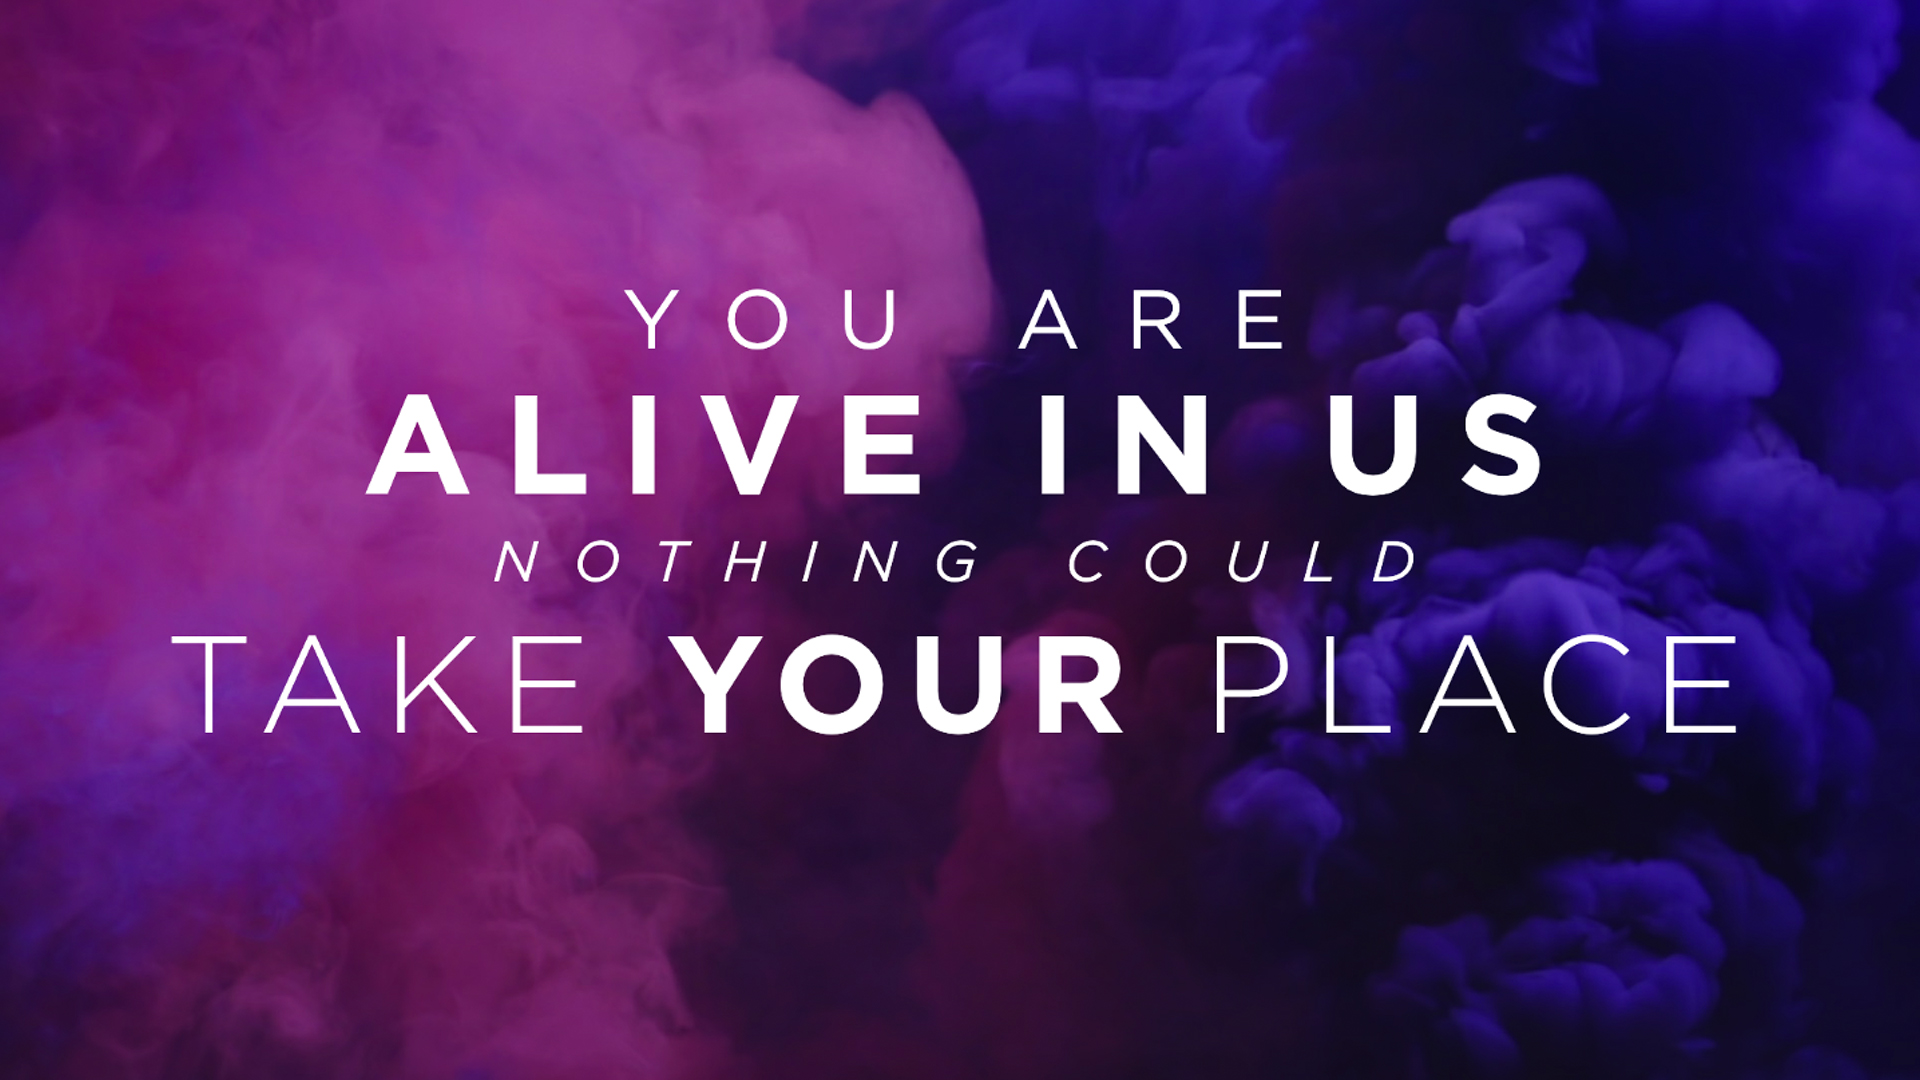 Praise And Worship Wallpaper Hd Three Next Level Looks For Your Worship Lyrics The